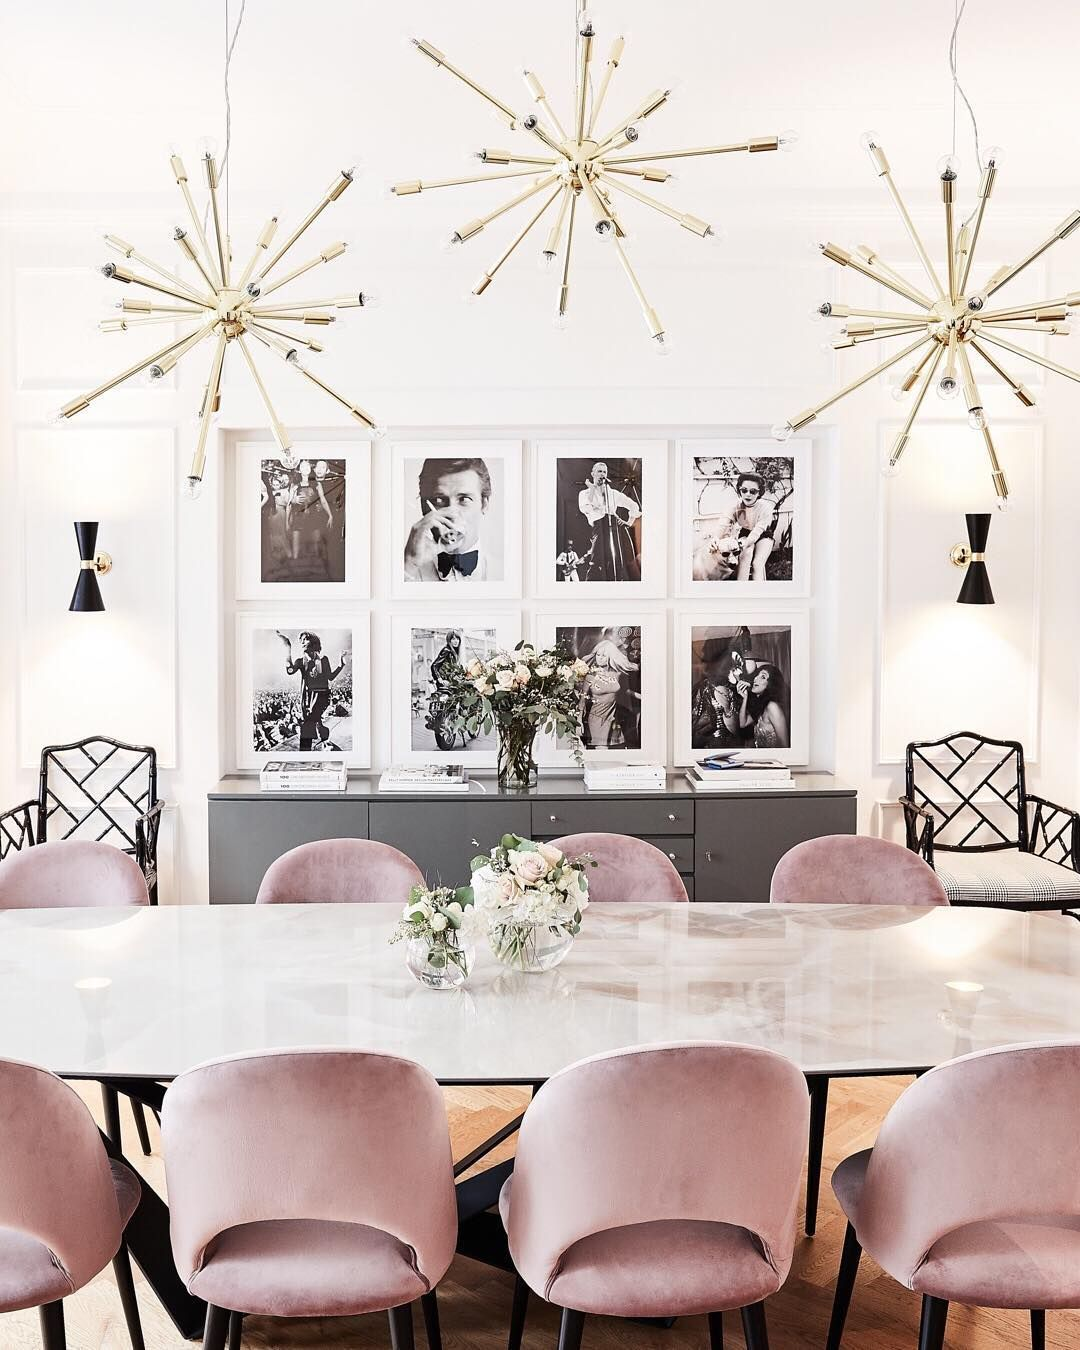 Covet paris also best     images in dinning table kitchen dining rh pinterest